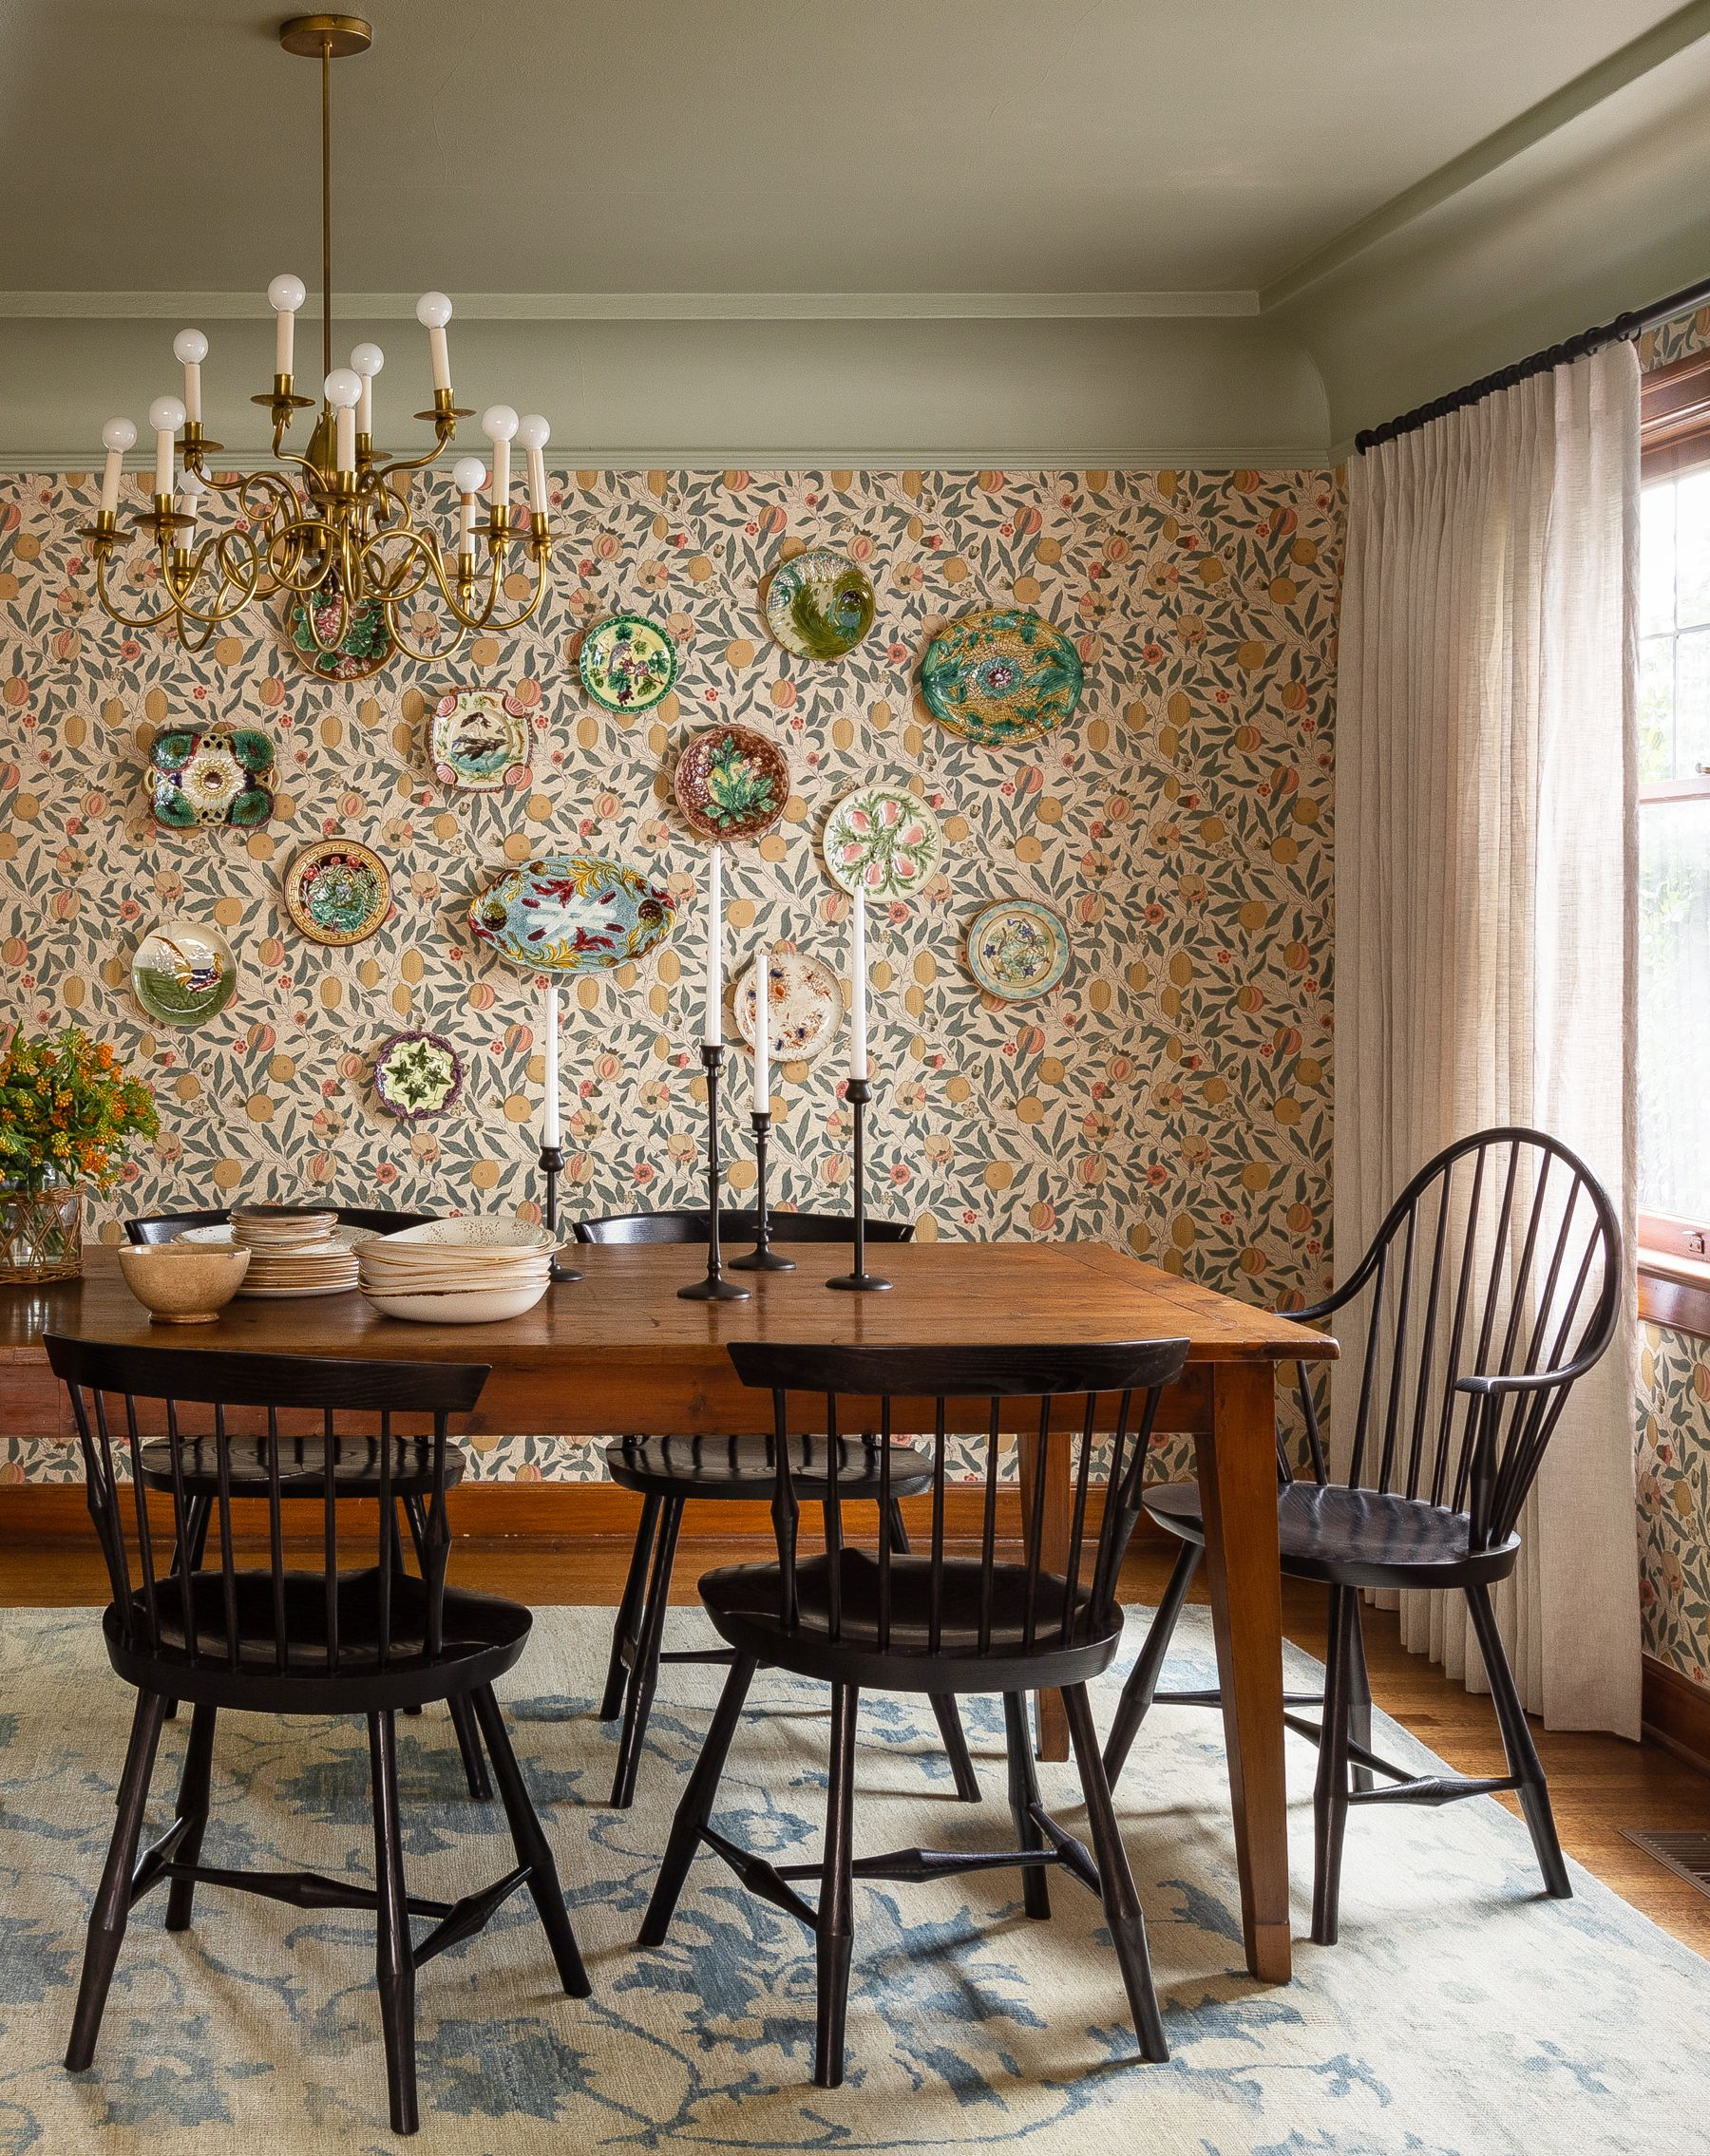 Morris Round Dining Tables Within Most Popular 55 Best Dining Room Decorating Ideas, Furniture, Designs (Gallery 11 of 30)